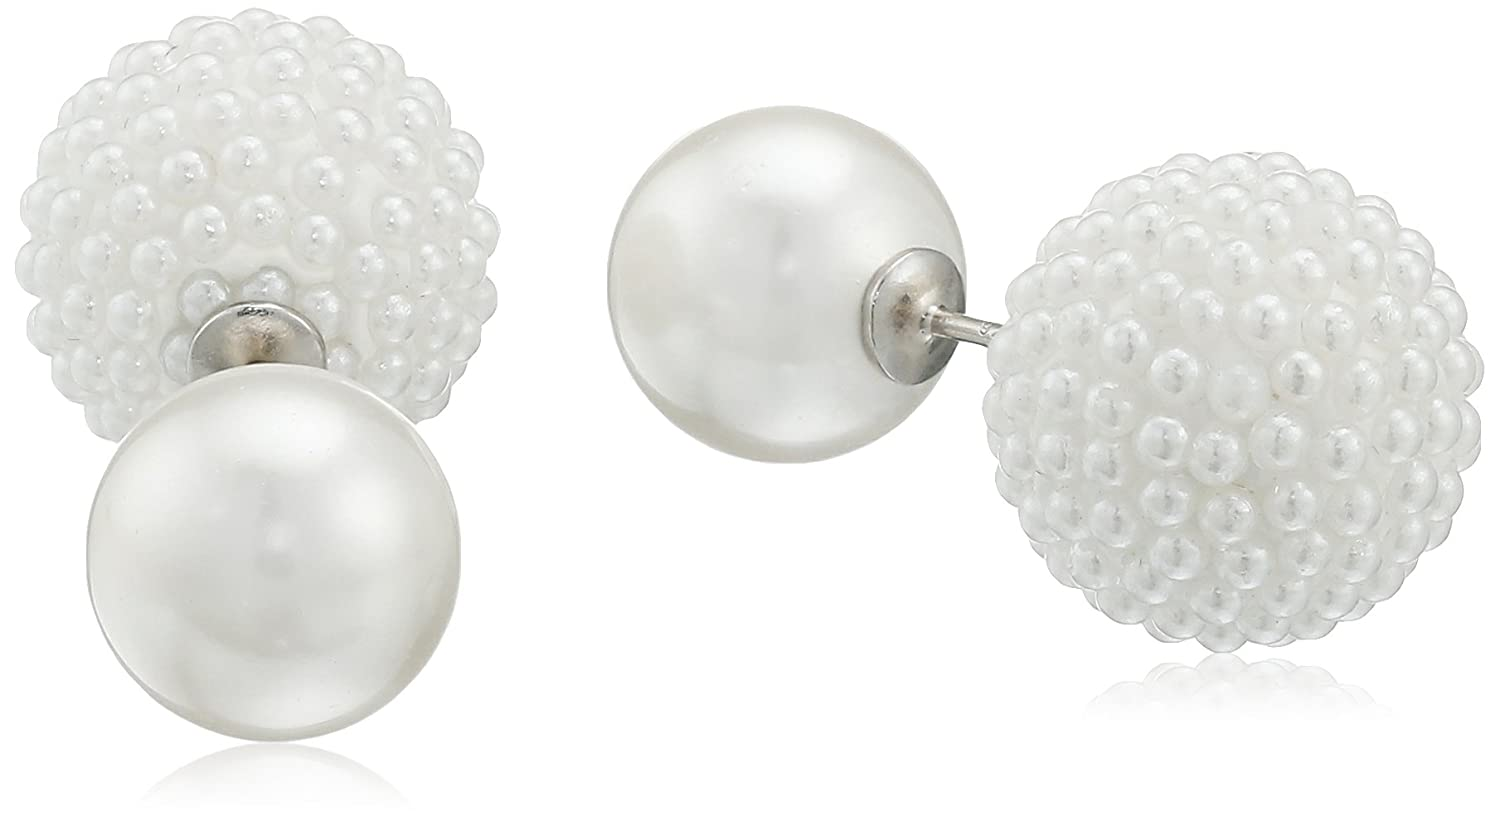 small peral shop designers pearl jewelry earrings august muehling white ted